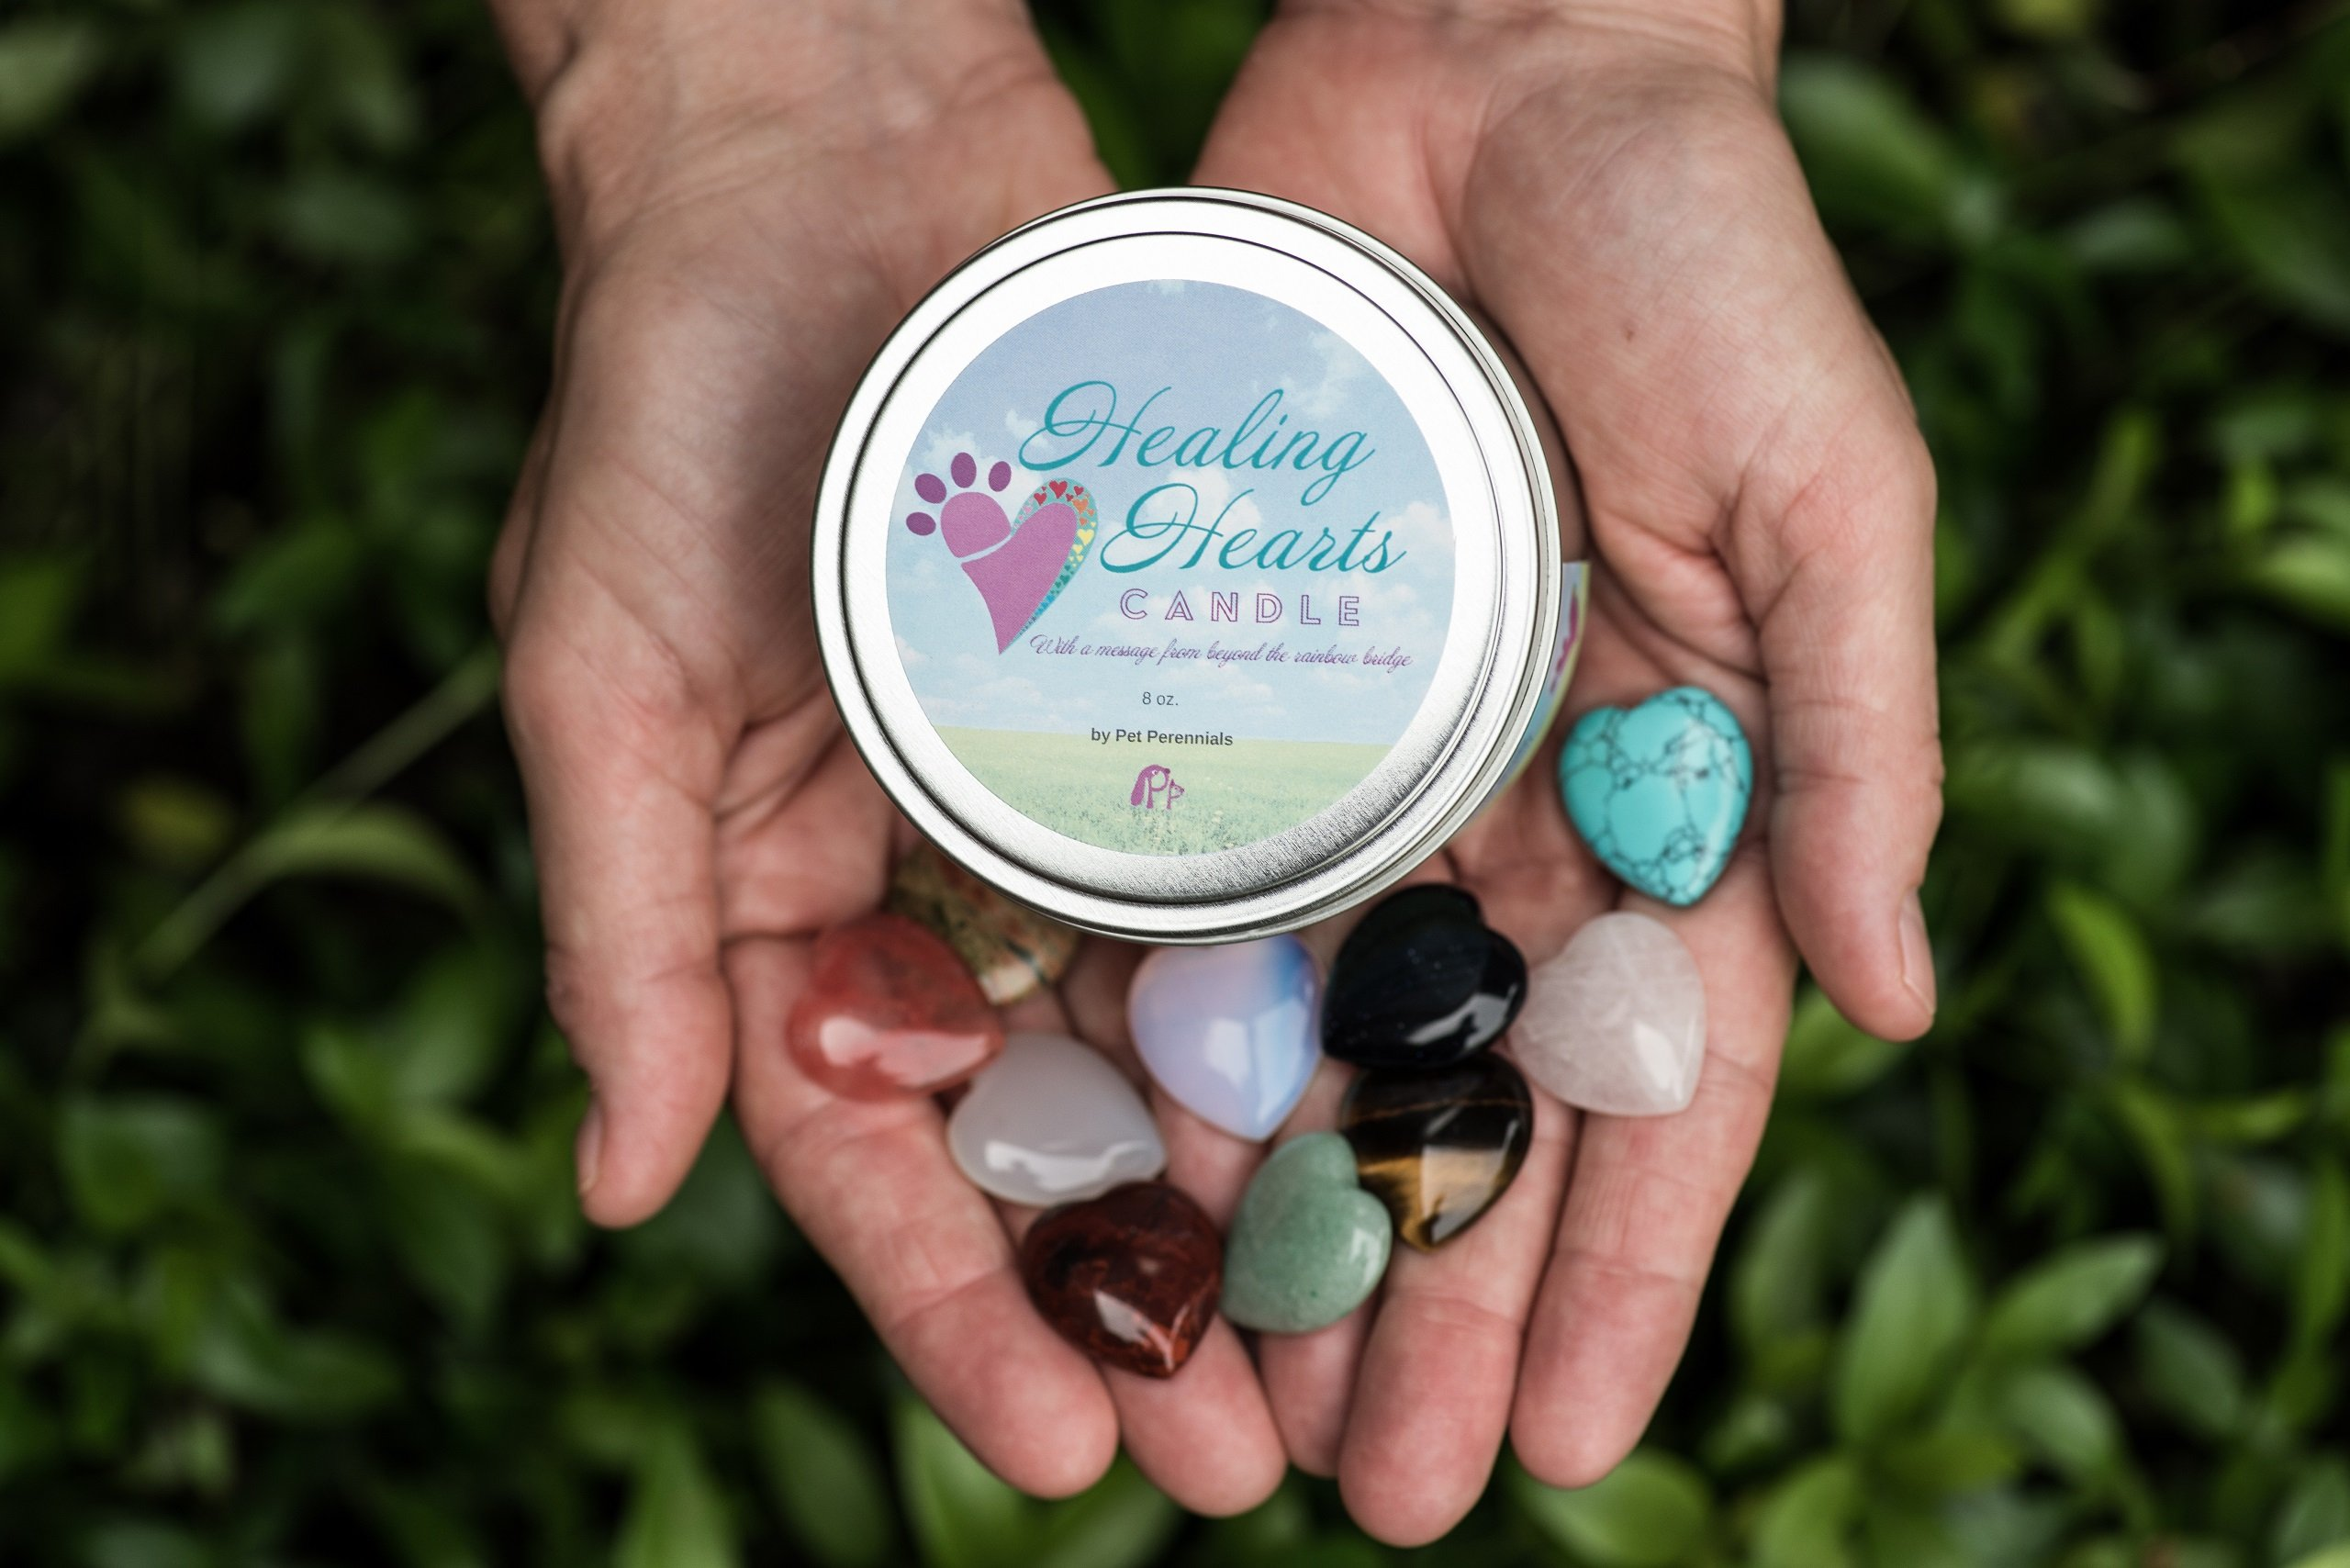 Dog Card and Healing Hearts Pet Memorial Candle by Pet Perennials love - seeds - life (Image #9)